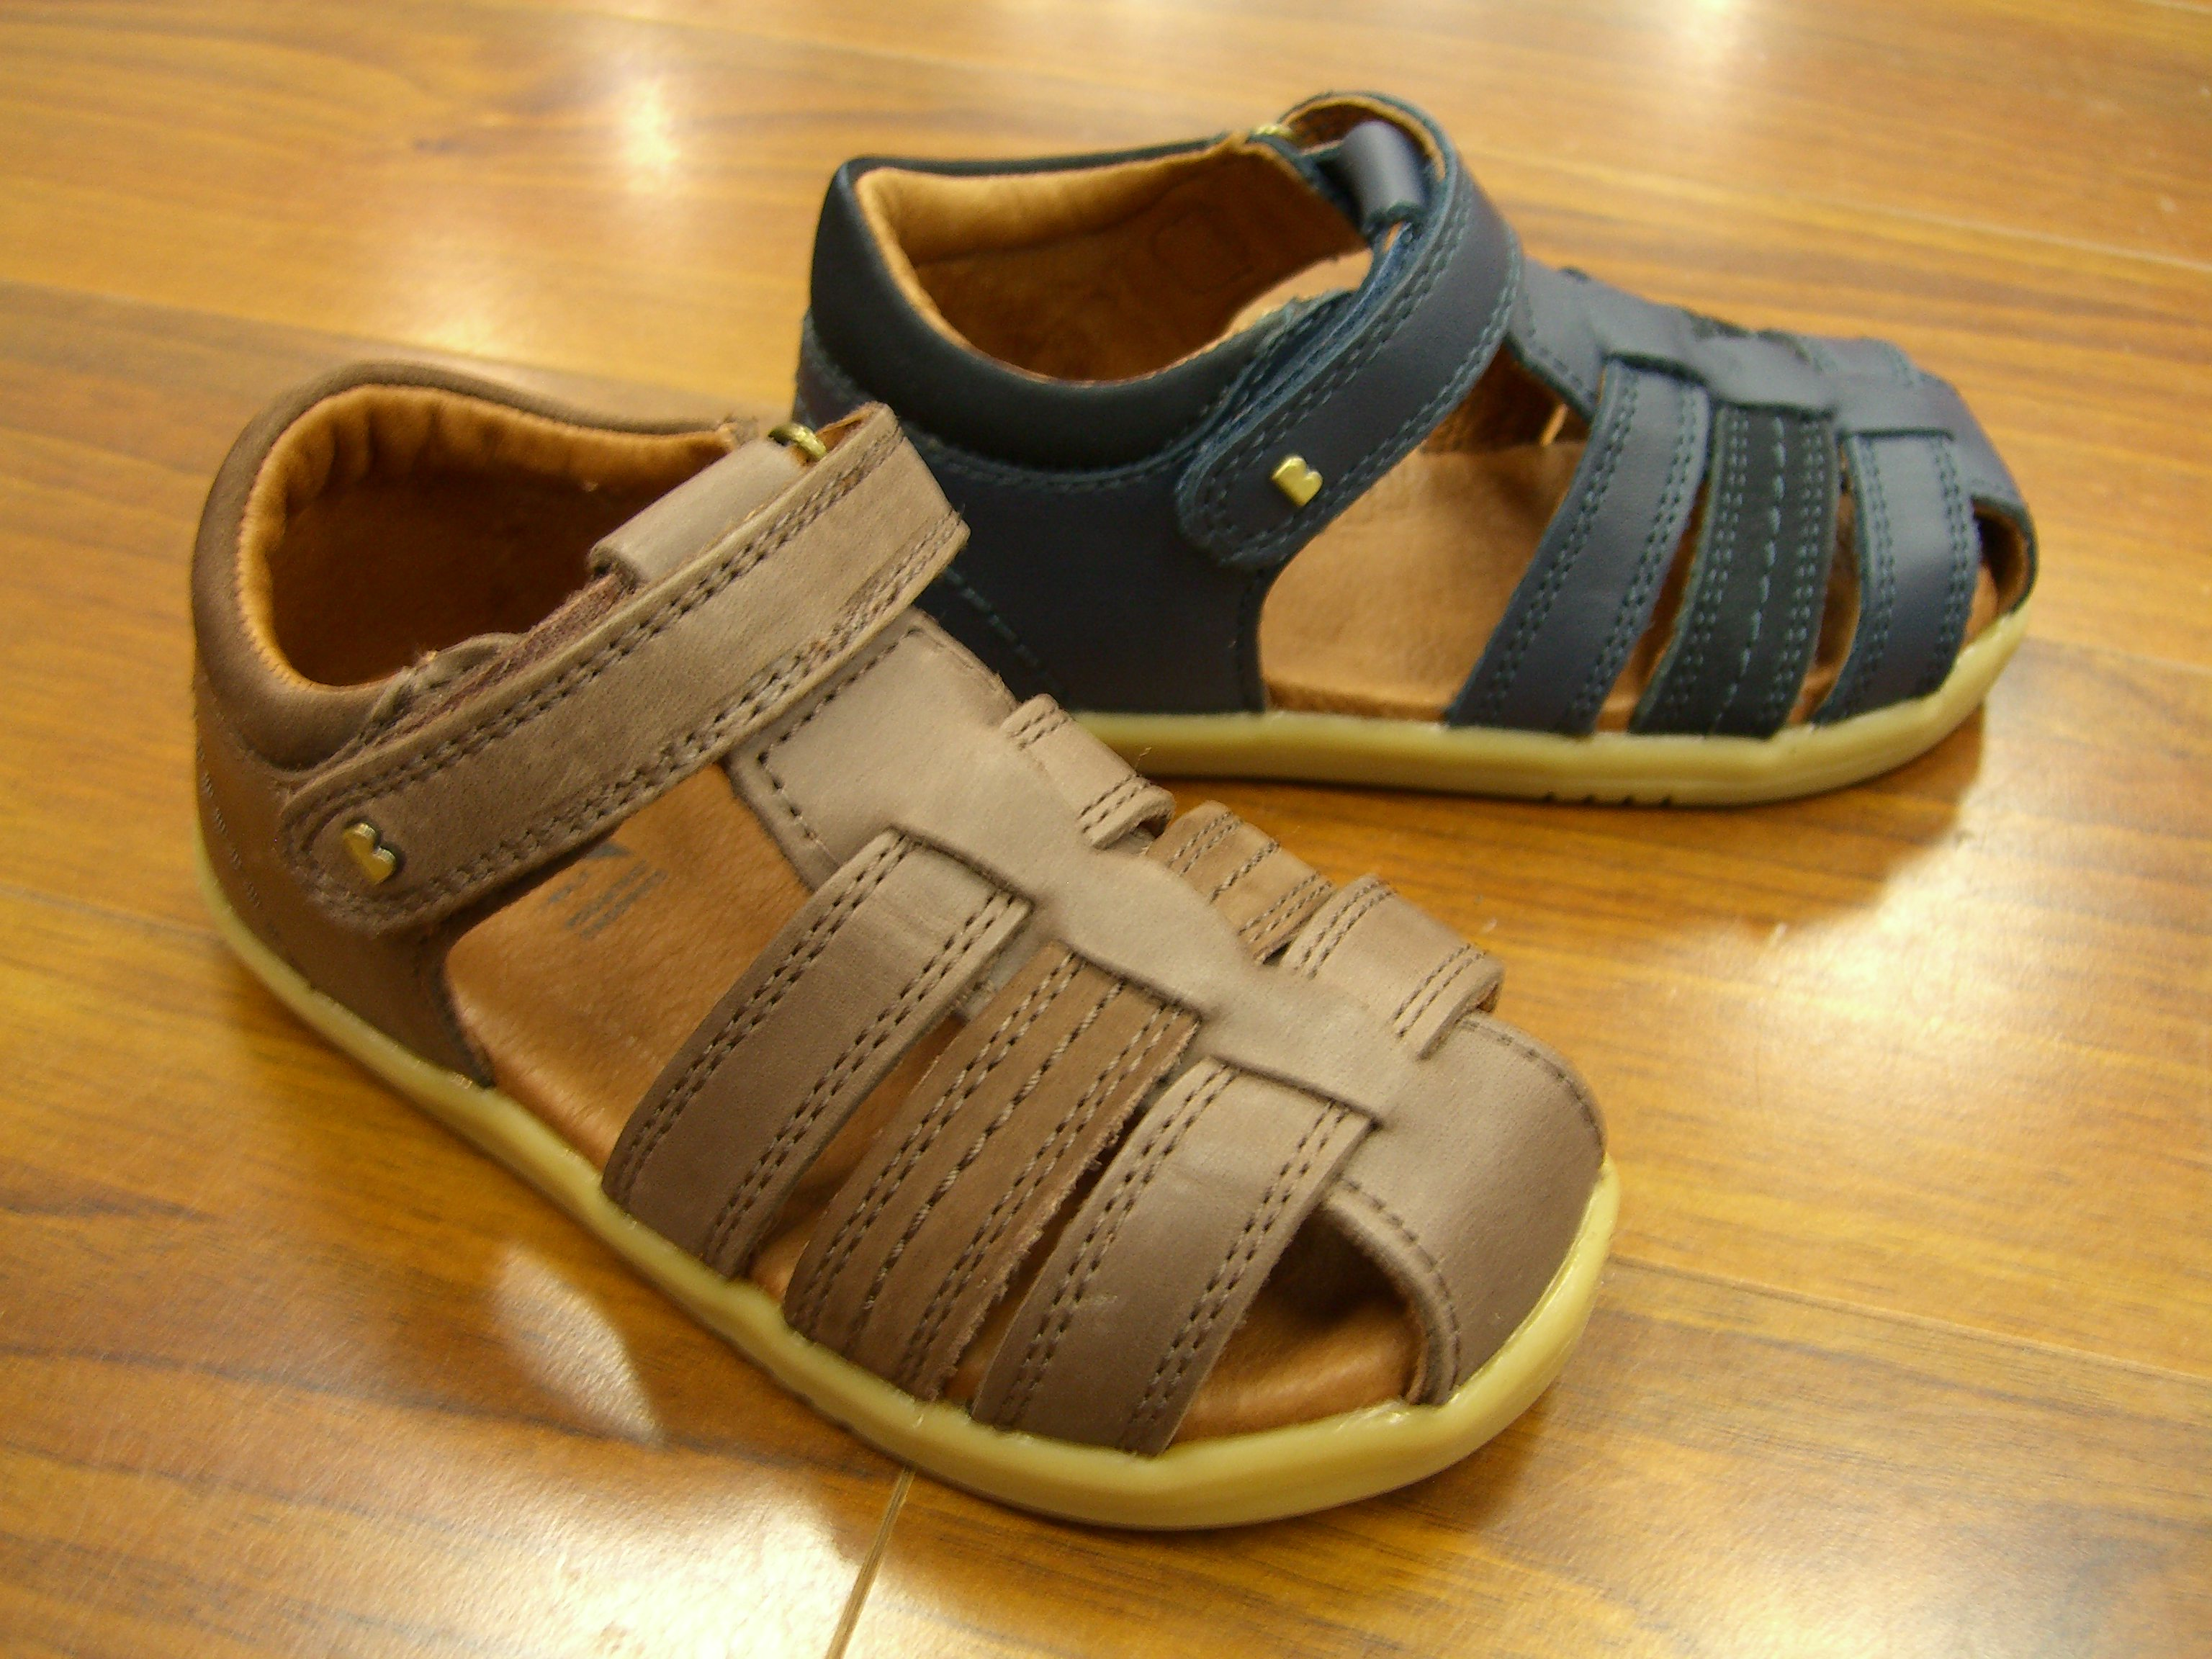 1be37256e bobux iw roam brown & navy boys leather sandals sizes 22-26